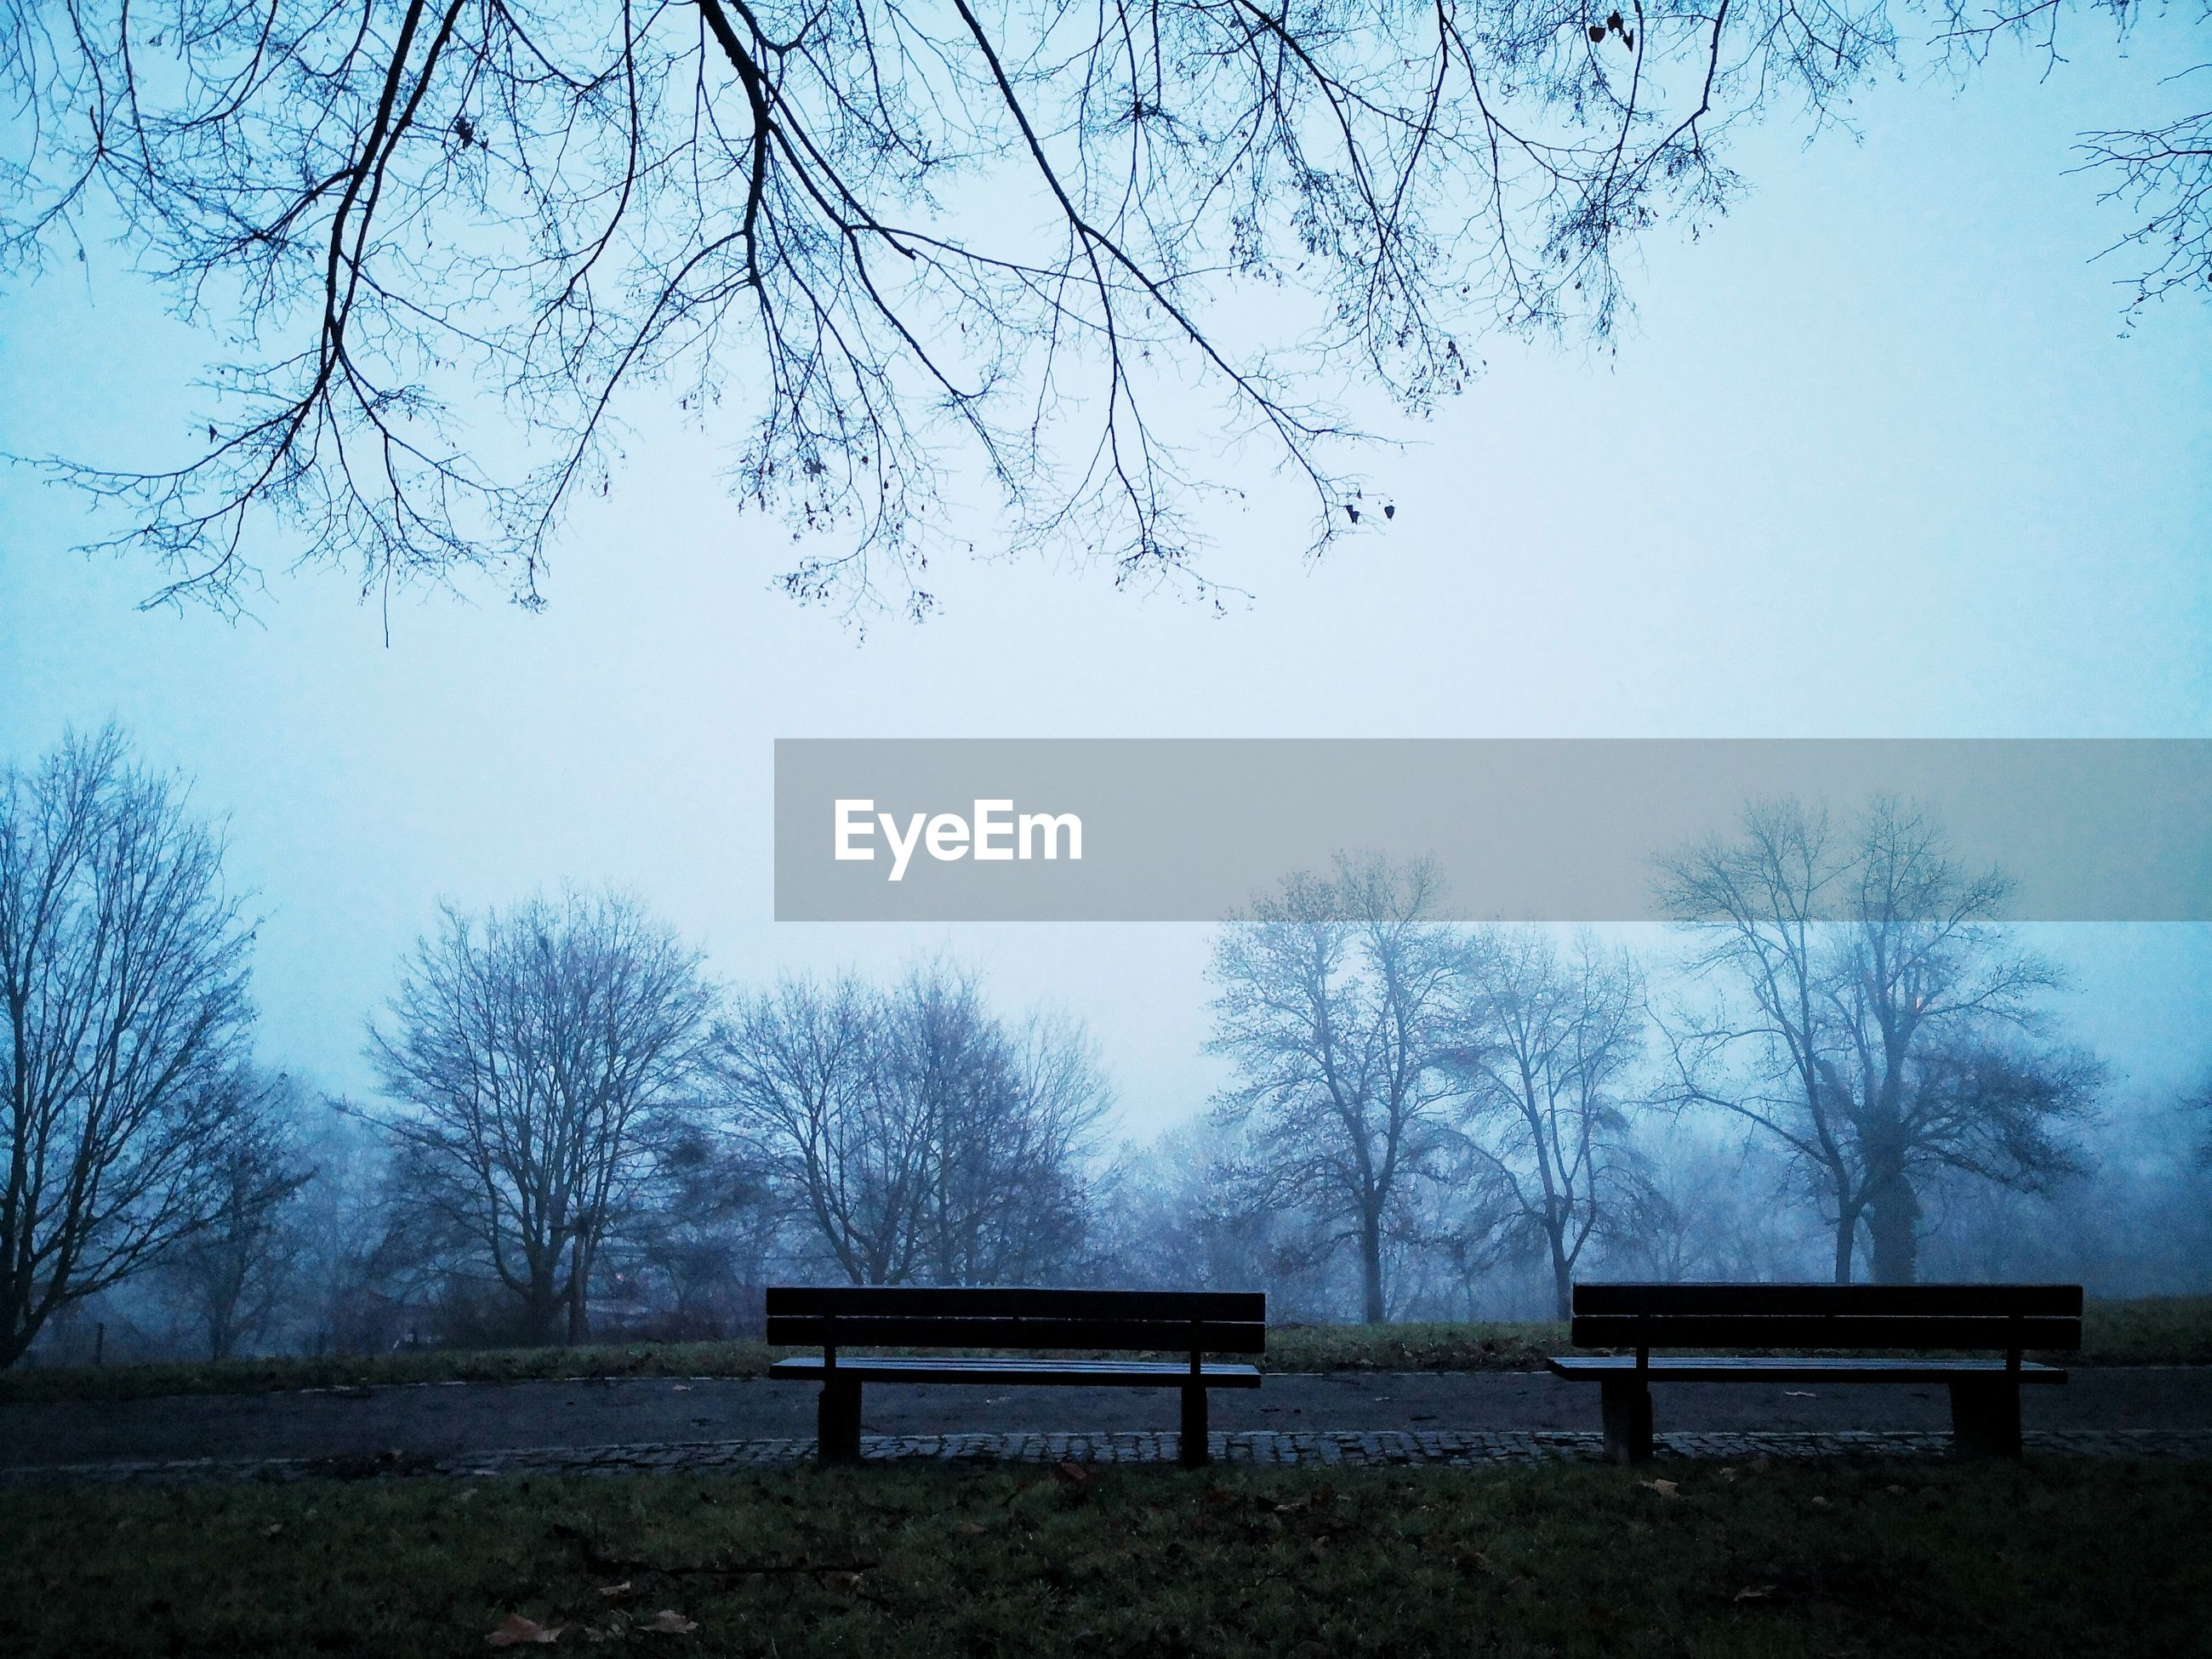 BENCH AGAINST BARE TREES IN PARK